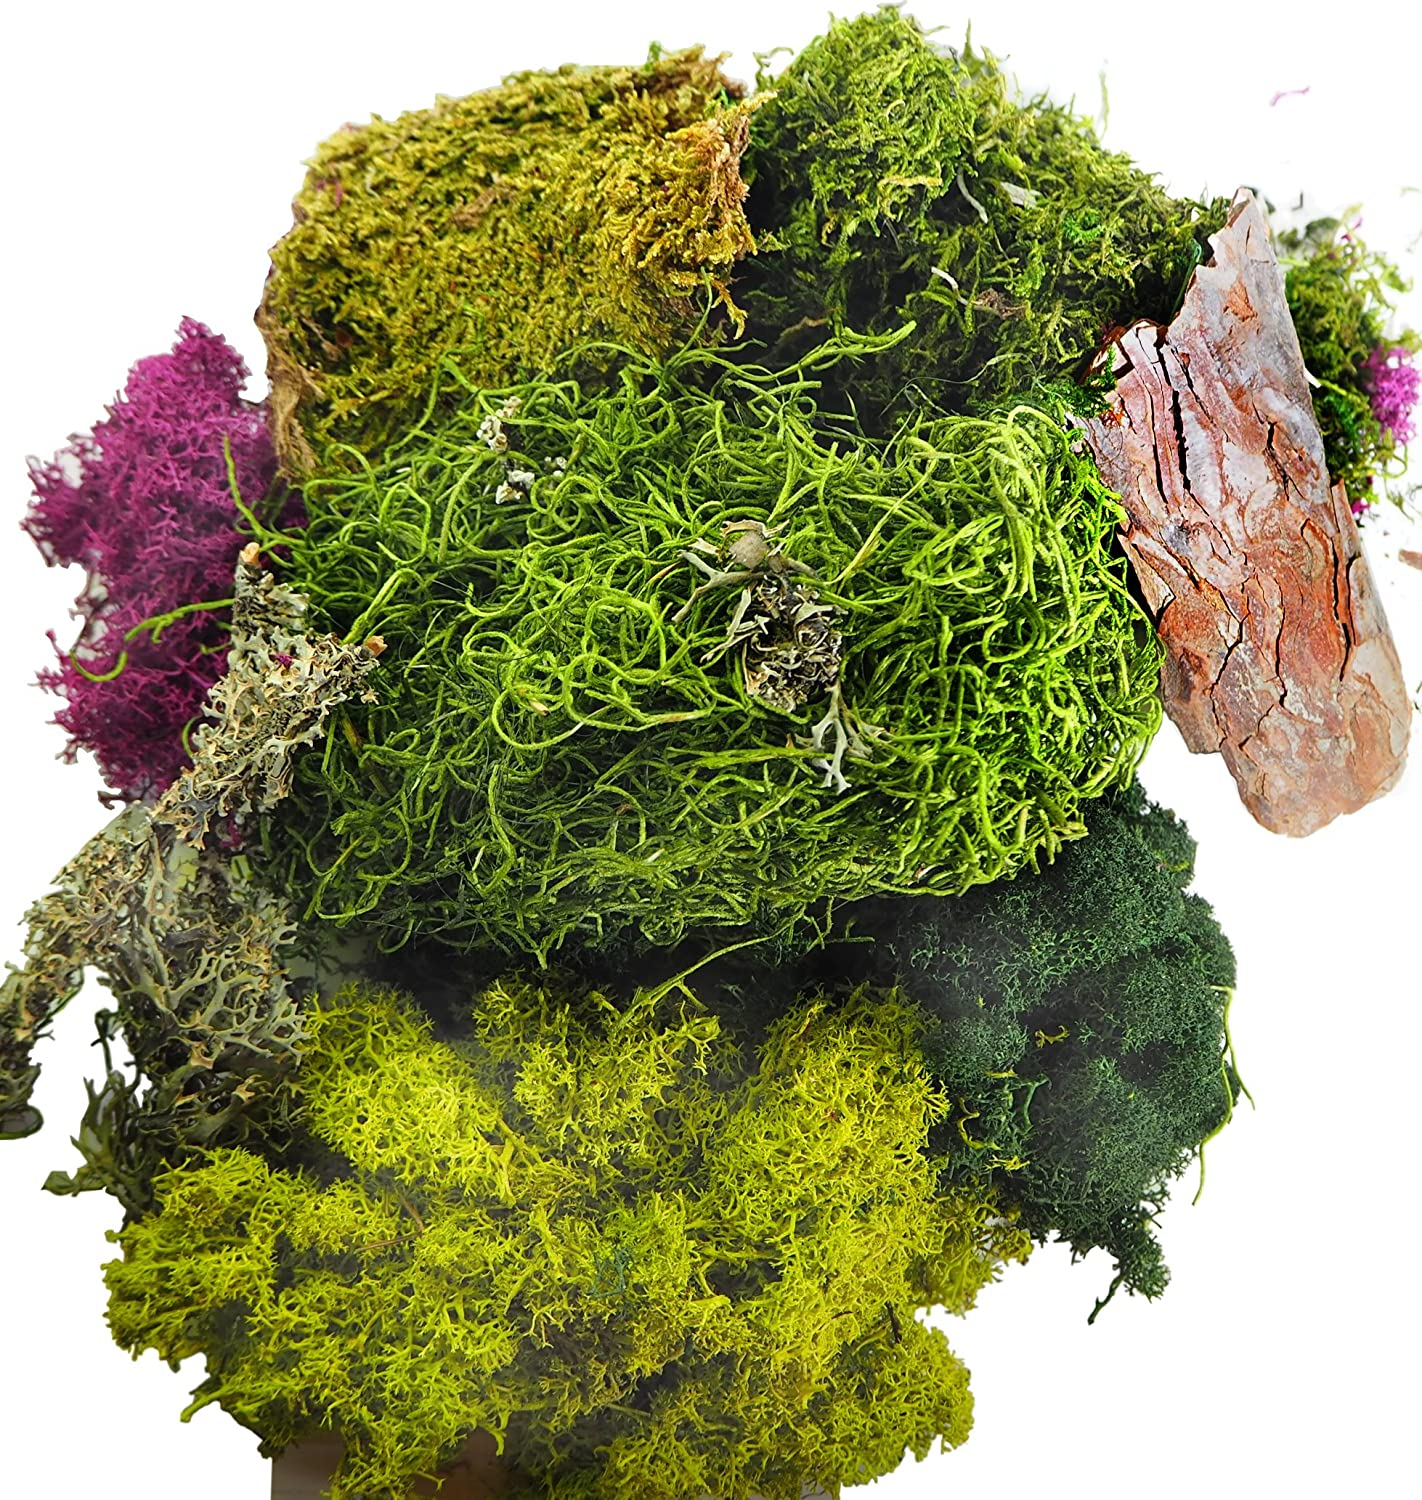 TerraGreen Creations Moss Fairy Garden and Succulent Terrarium Accent Pack - Several Moss Types - Bark - Mini Figures